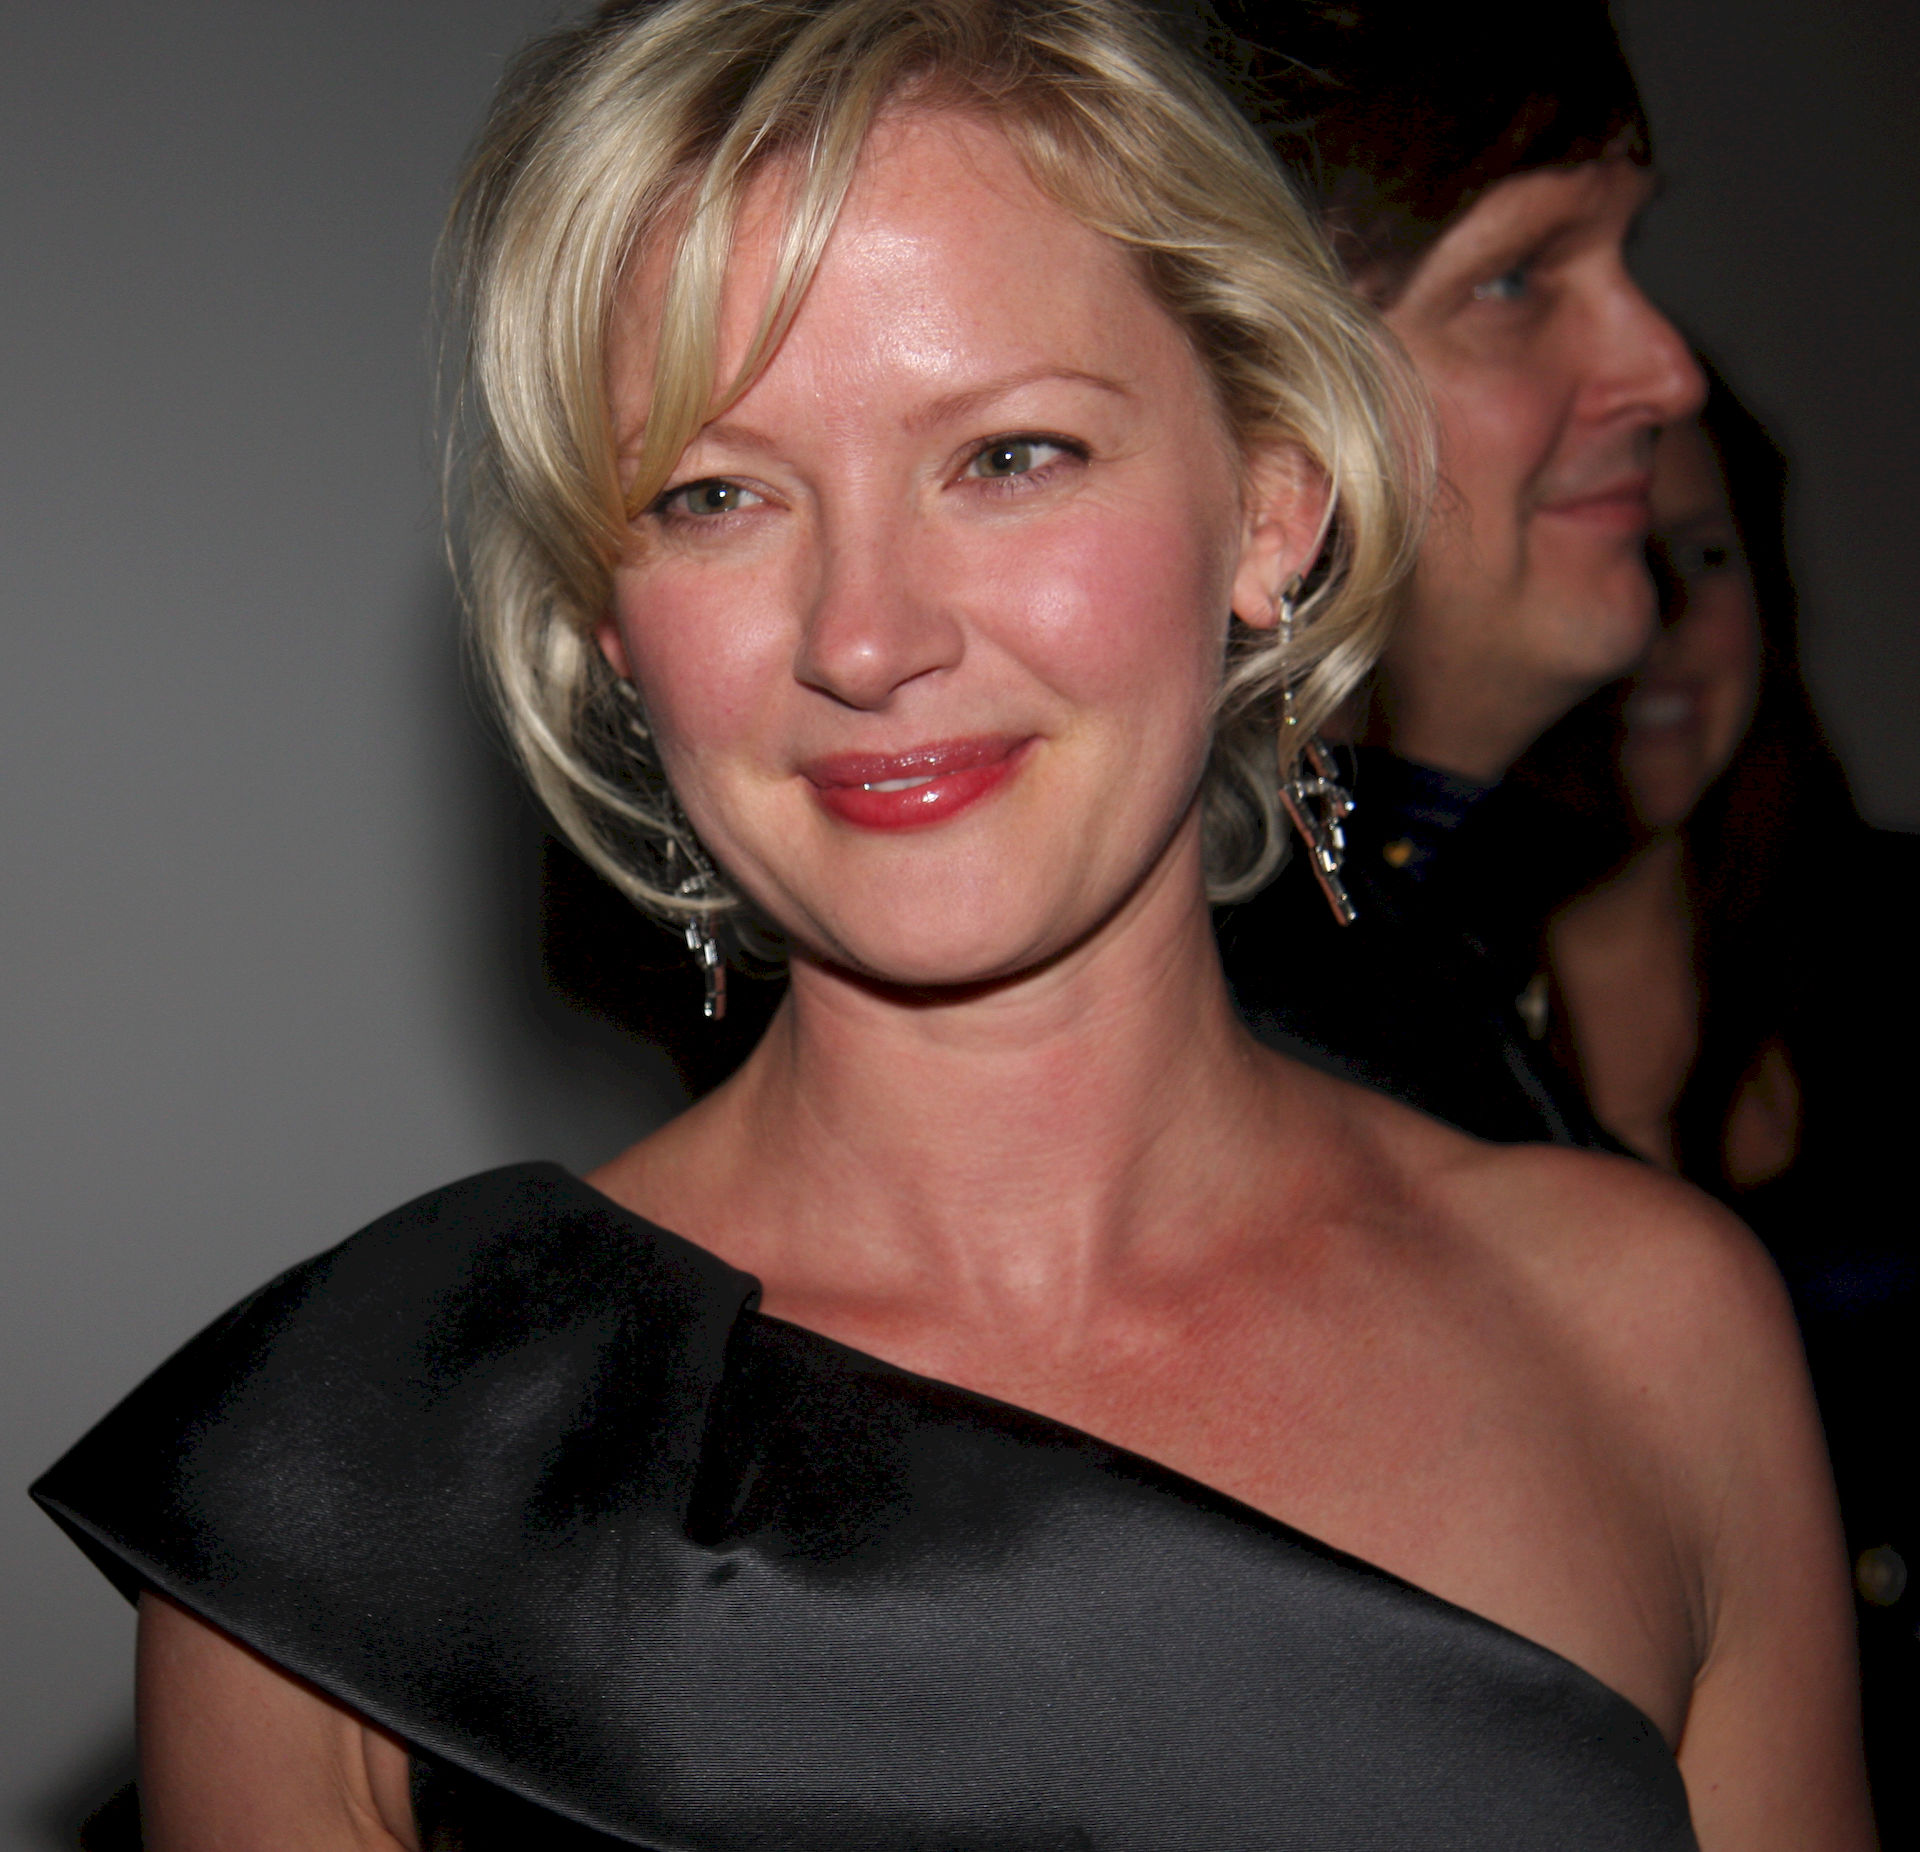 Photo of Gretchen Mol: American actress and former model